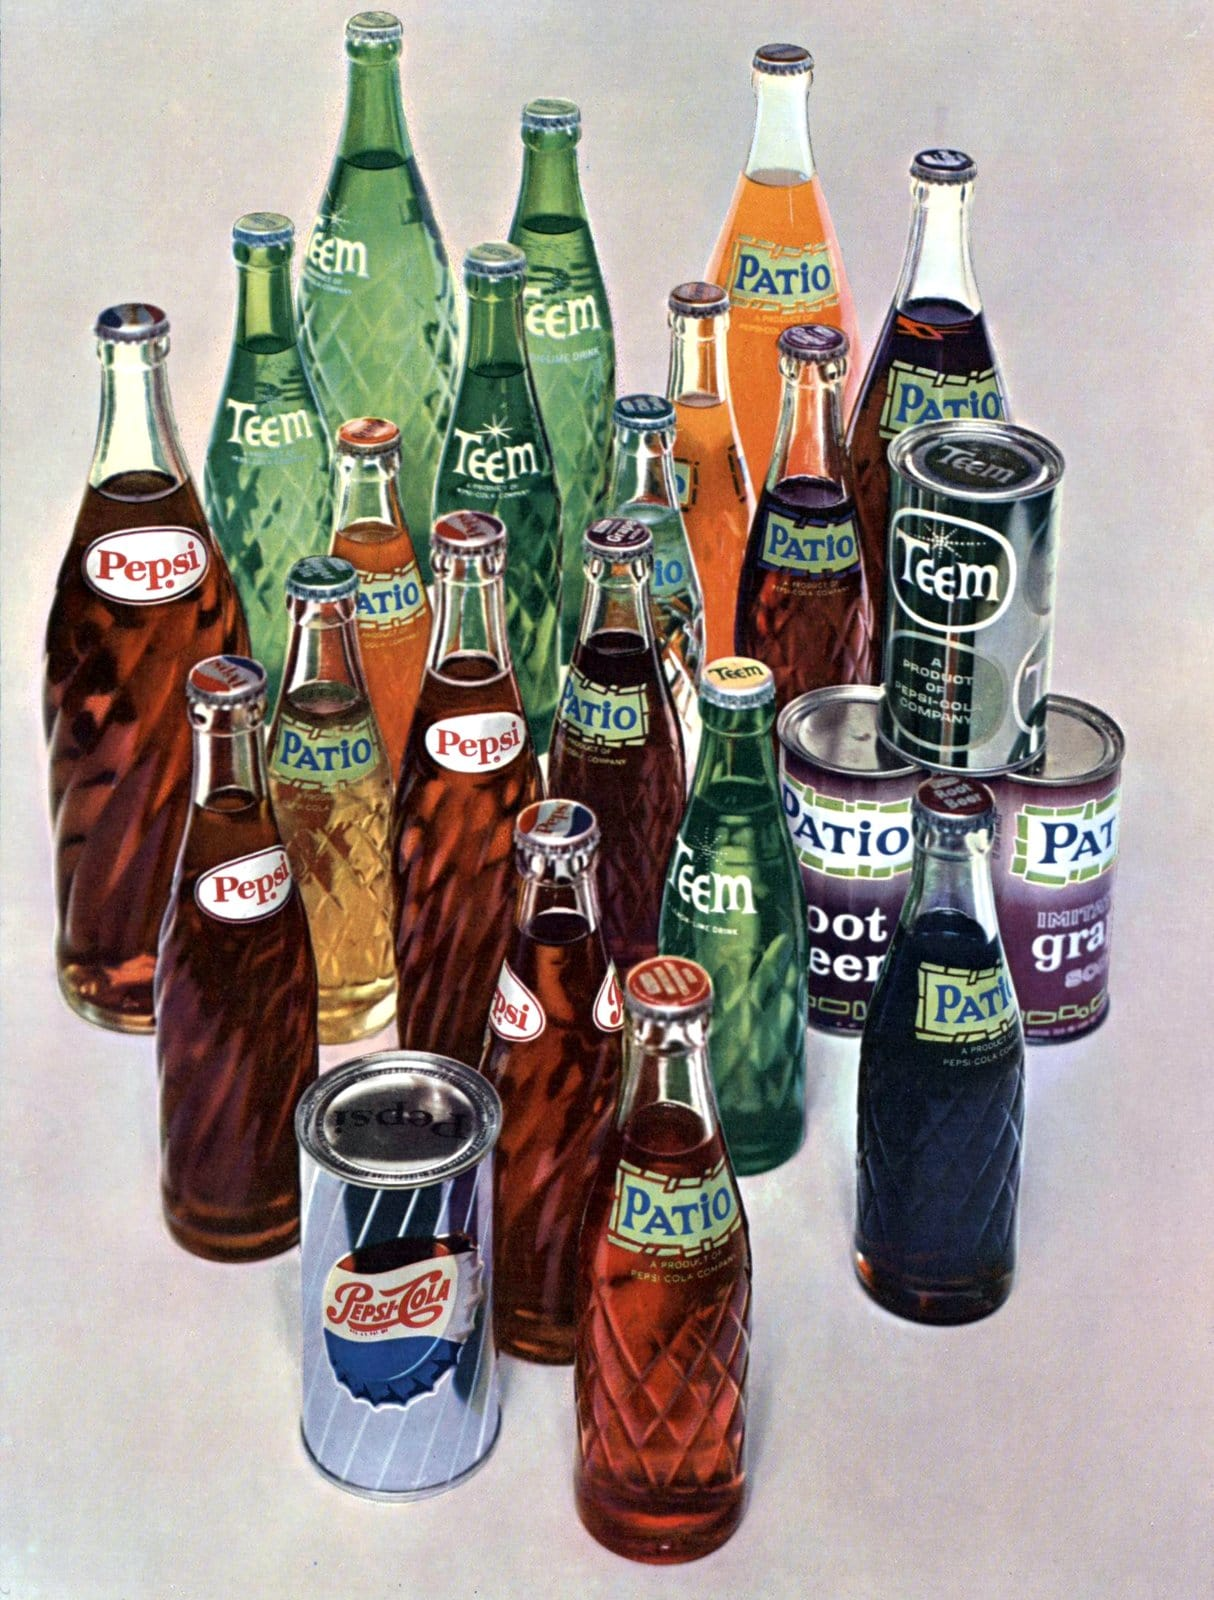 Vintage Pepsi drinks in cans and bottles from 1960